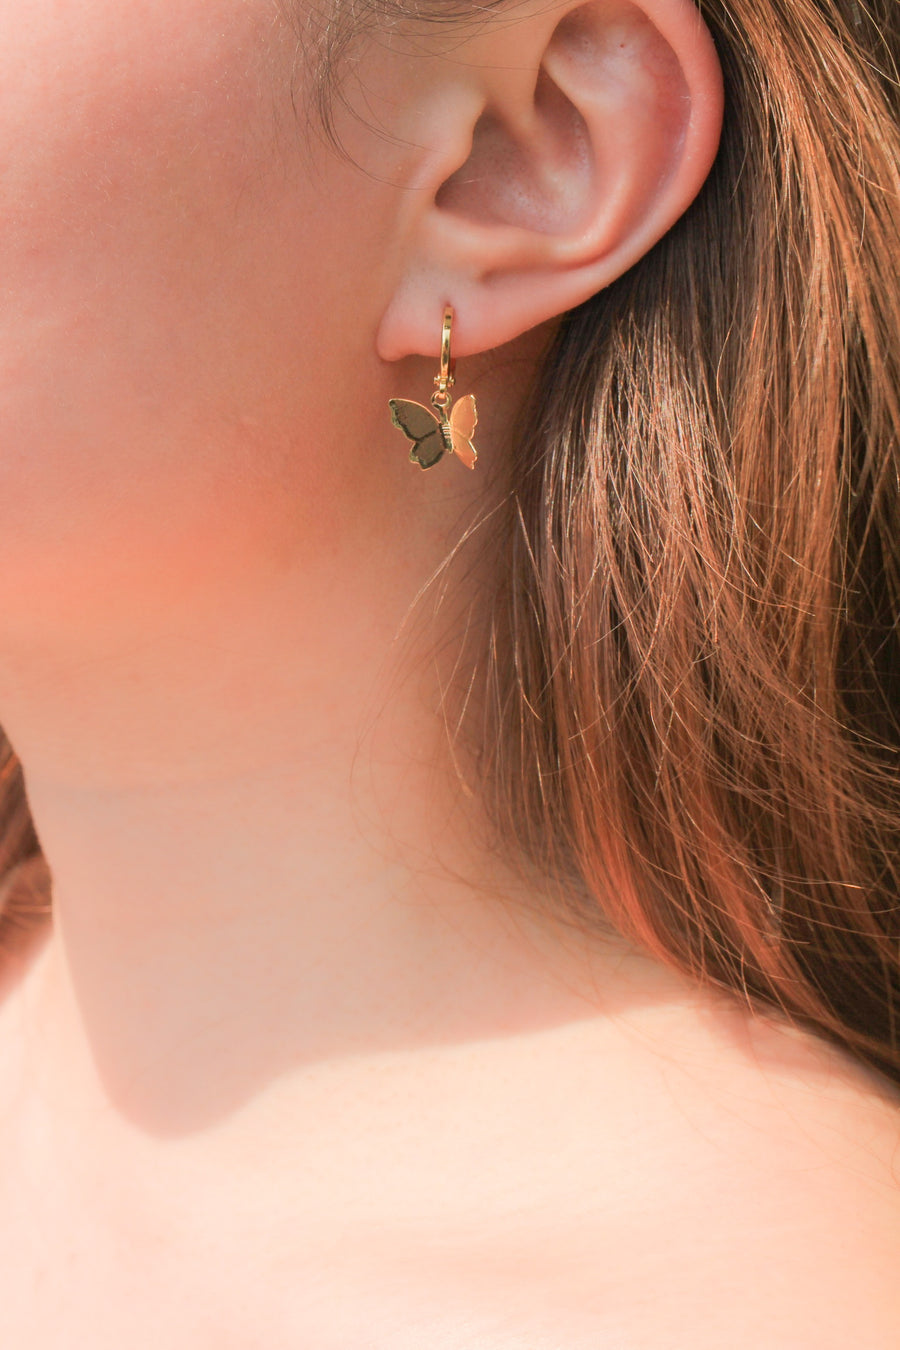 Personalised Earrings - Butterfly